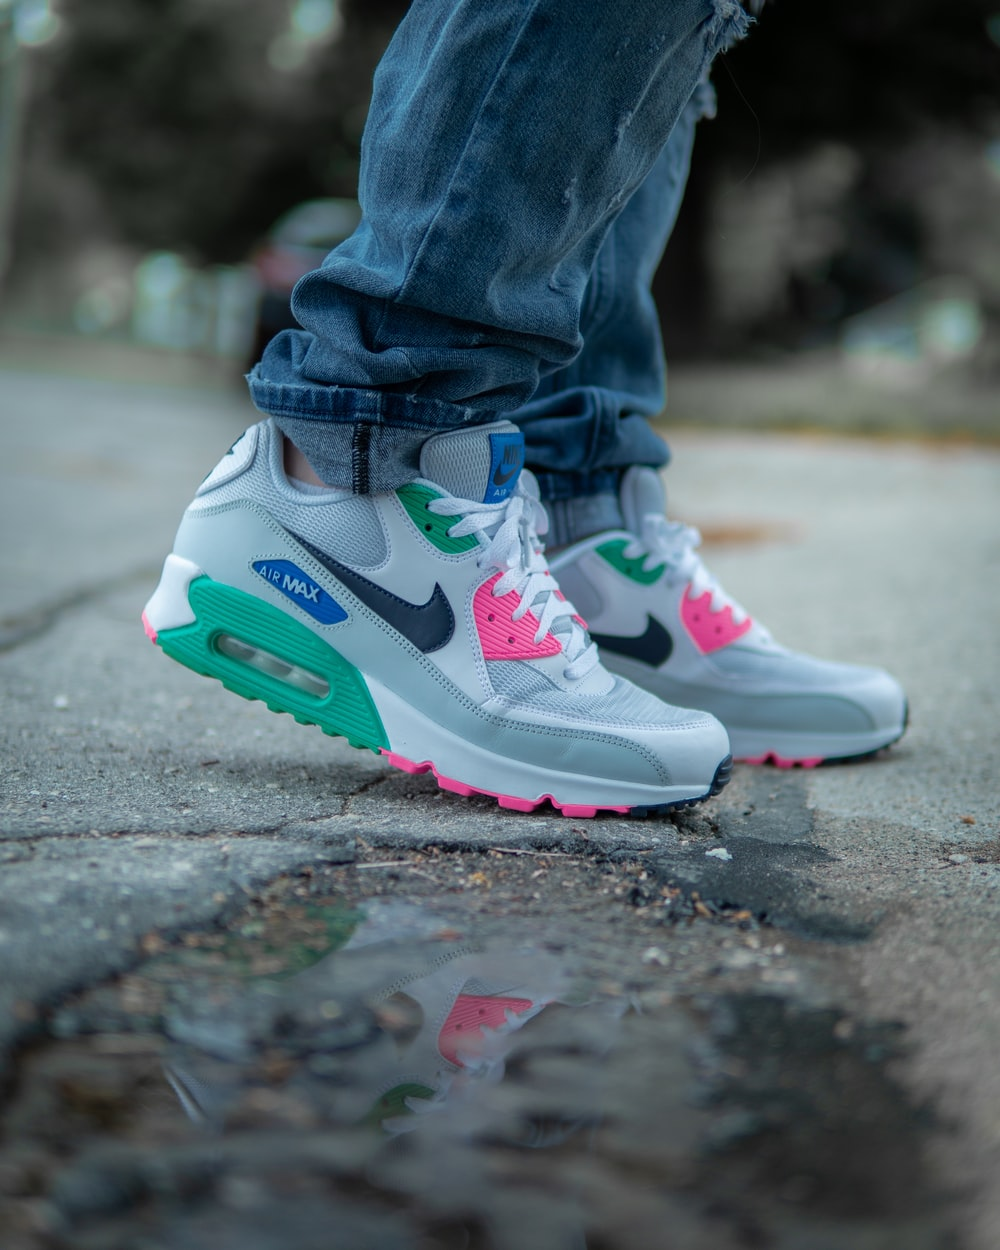 c3aa76a7b4 person wearing blue jeans. person wearing blue jeans. AirMax 90 Summer time